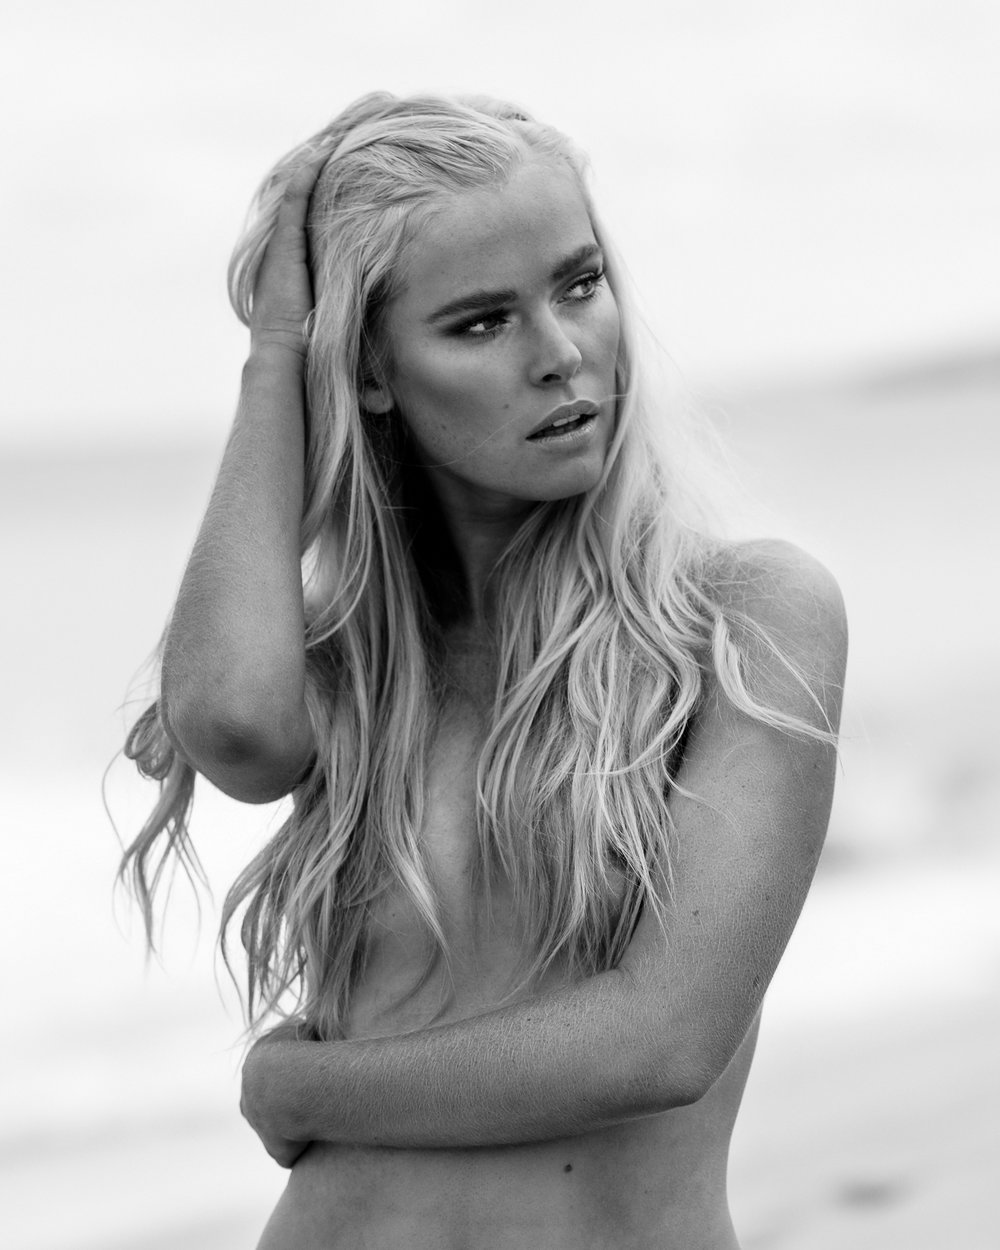 From my first shoot with Millie | Margaret River, Western Australia 2016